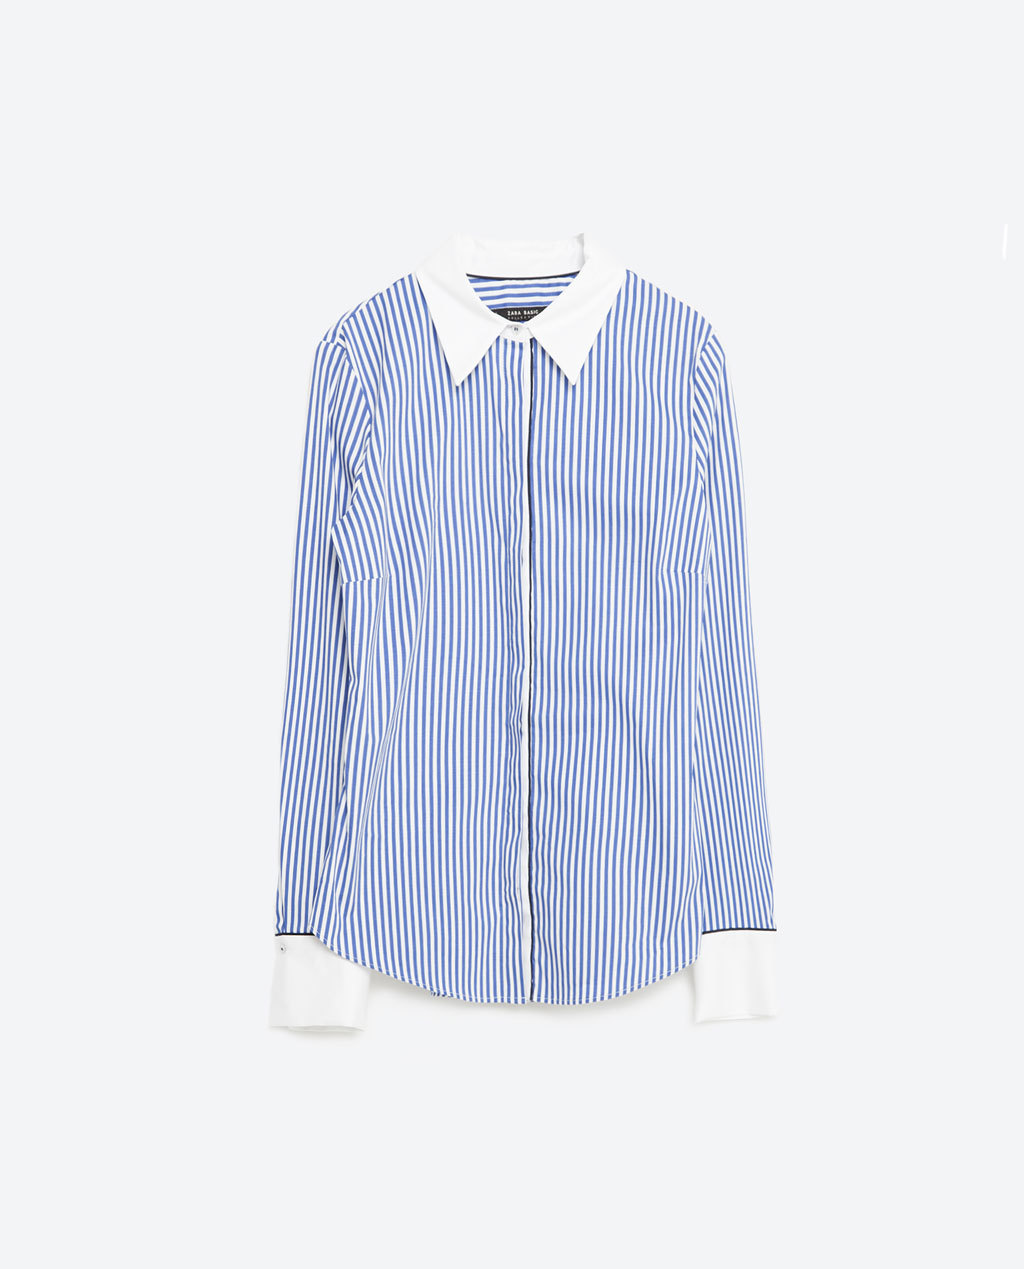 Striped Shirt - neckline: shirt collar/peter pan/zip with opening; pattern: vertical stripes; style: shirt; secondary colour: white; predominant colour: pale blue; occasions: casual, work, creative work; length: standard; fibres: cotton - mix; fit: body skimming; sleeve length: long sleeve; sleeve style: standard; pattern type: fabric; pattern size: standard; texture group: woven light midweight; season: s/s 2016; wardrobe: highlight